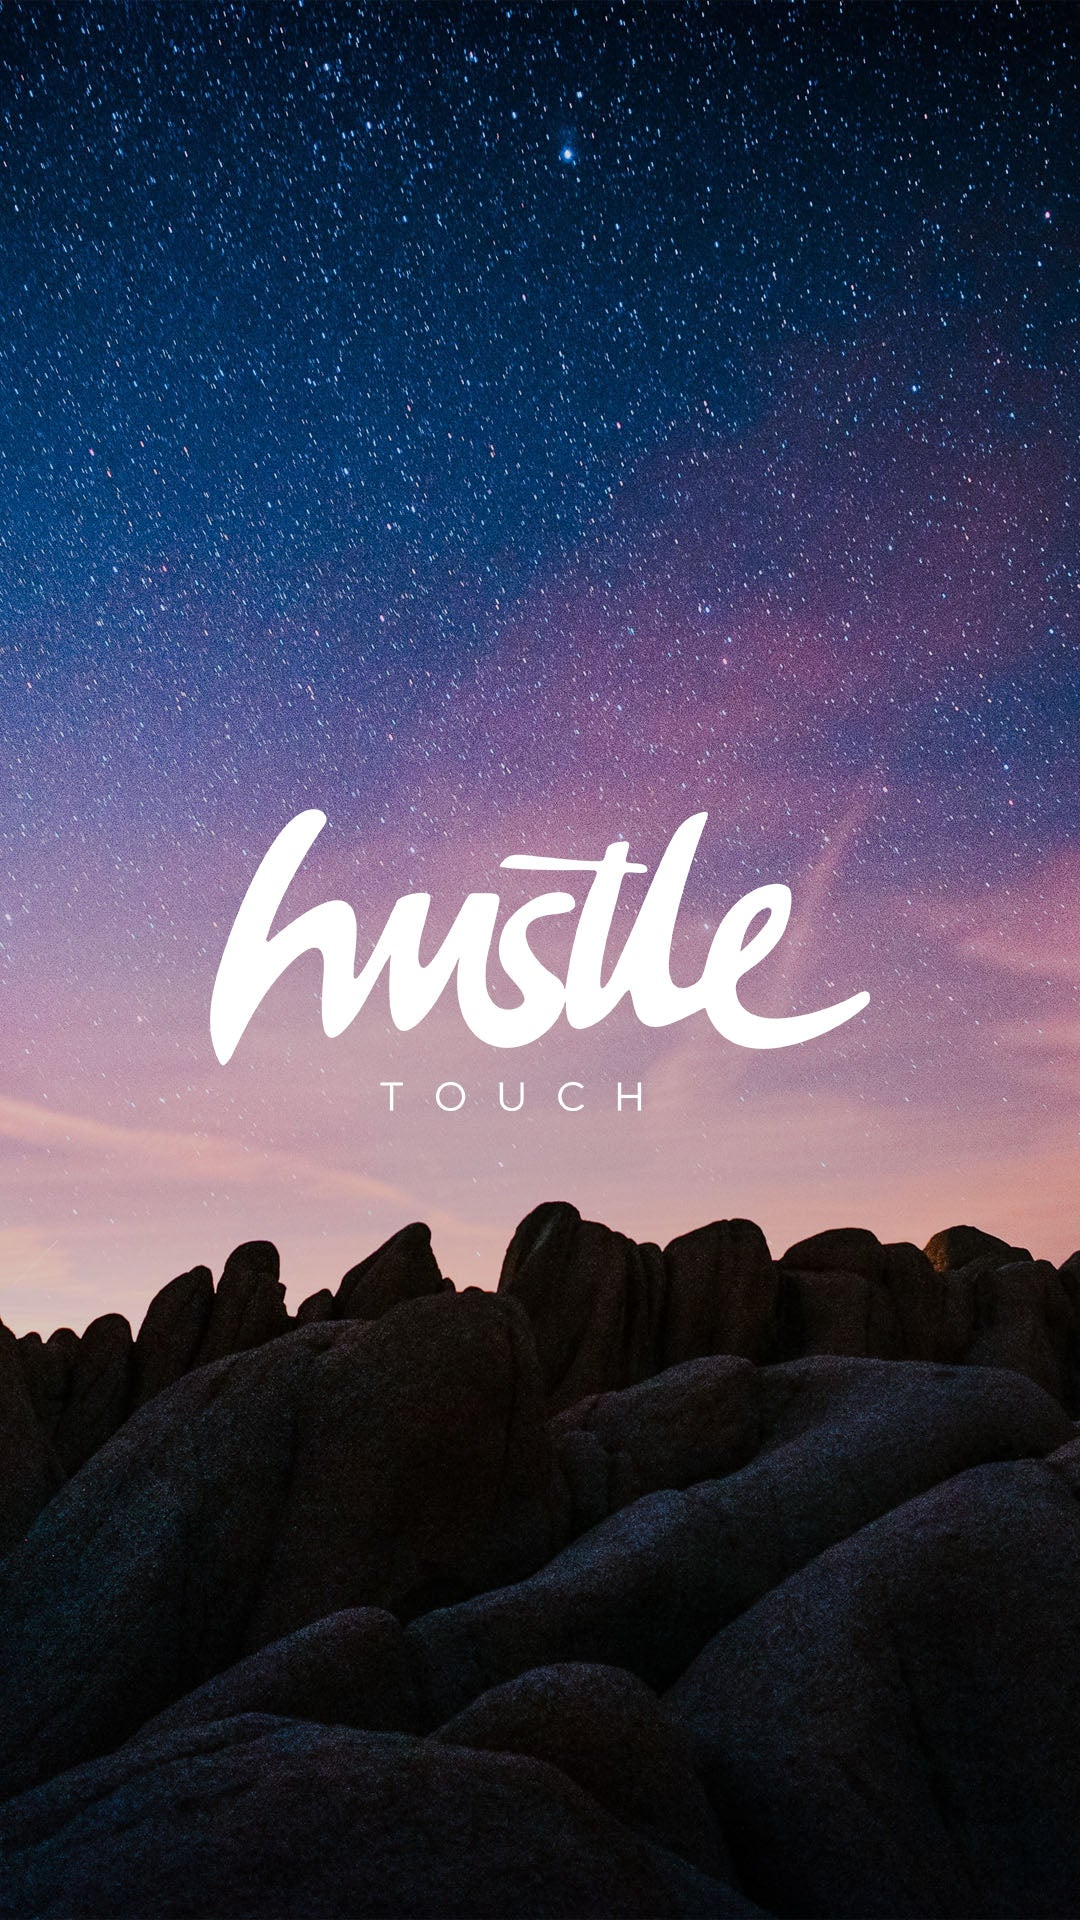 Get our Phone Hustle Touch Wallpaper 022 for free. Give your setup a special hustle vibe with our wallpaper. Browse and discover our free Hustle Wallpaper Collection.